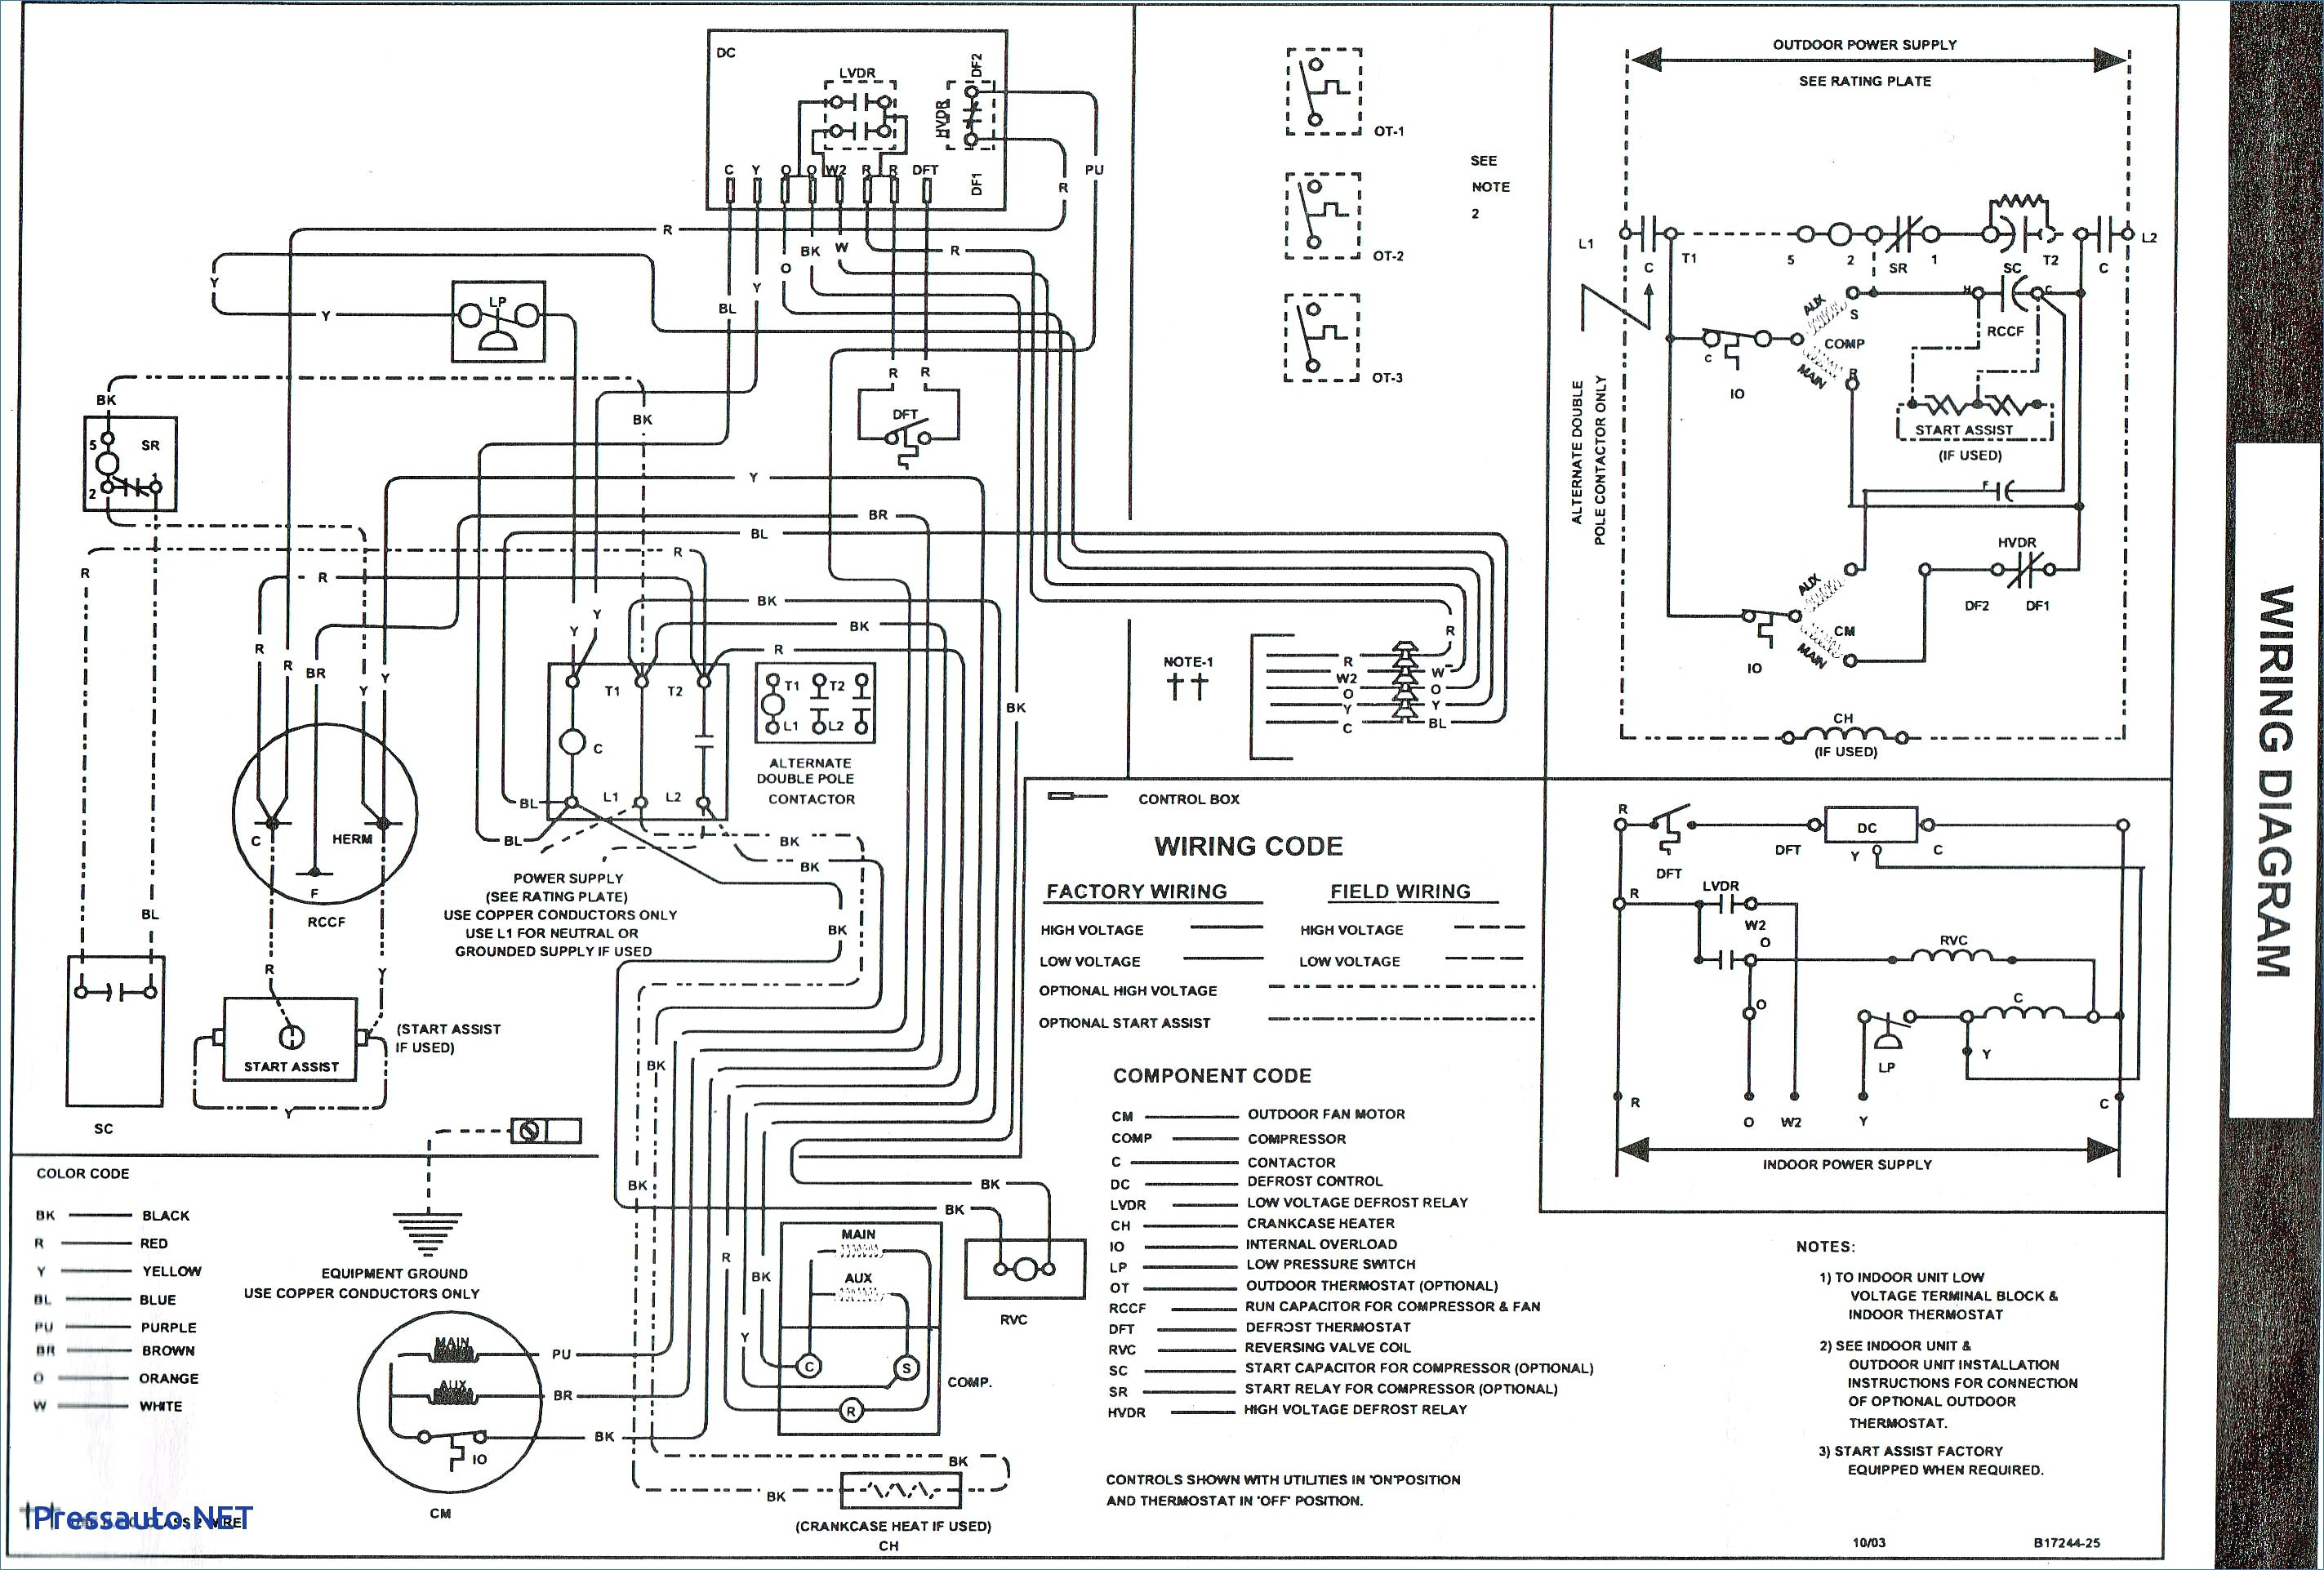 goodman air handler wiring diagram sample. Black Bedroom Furniture Sets. Home Design Ideas